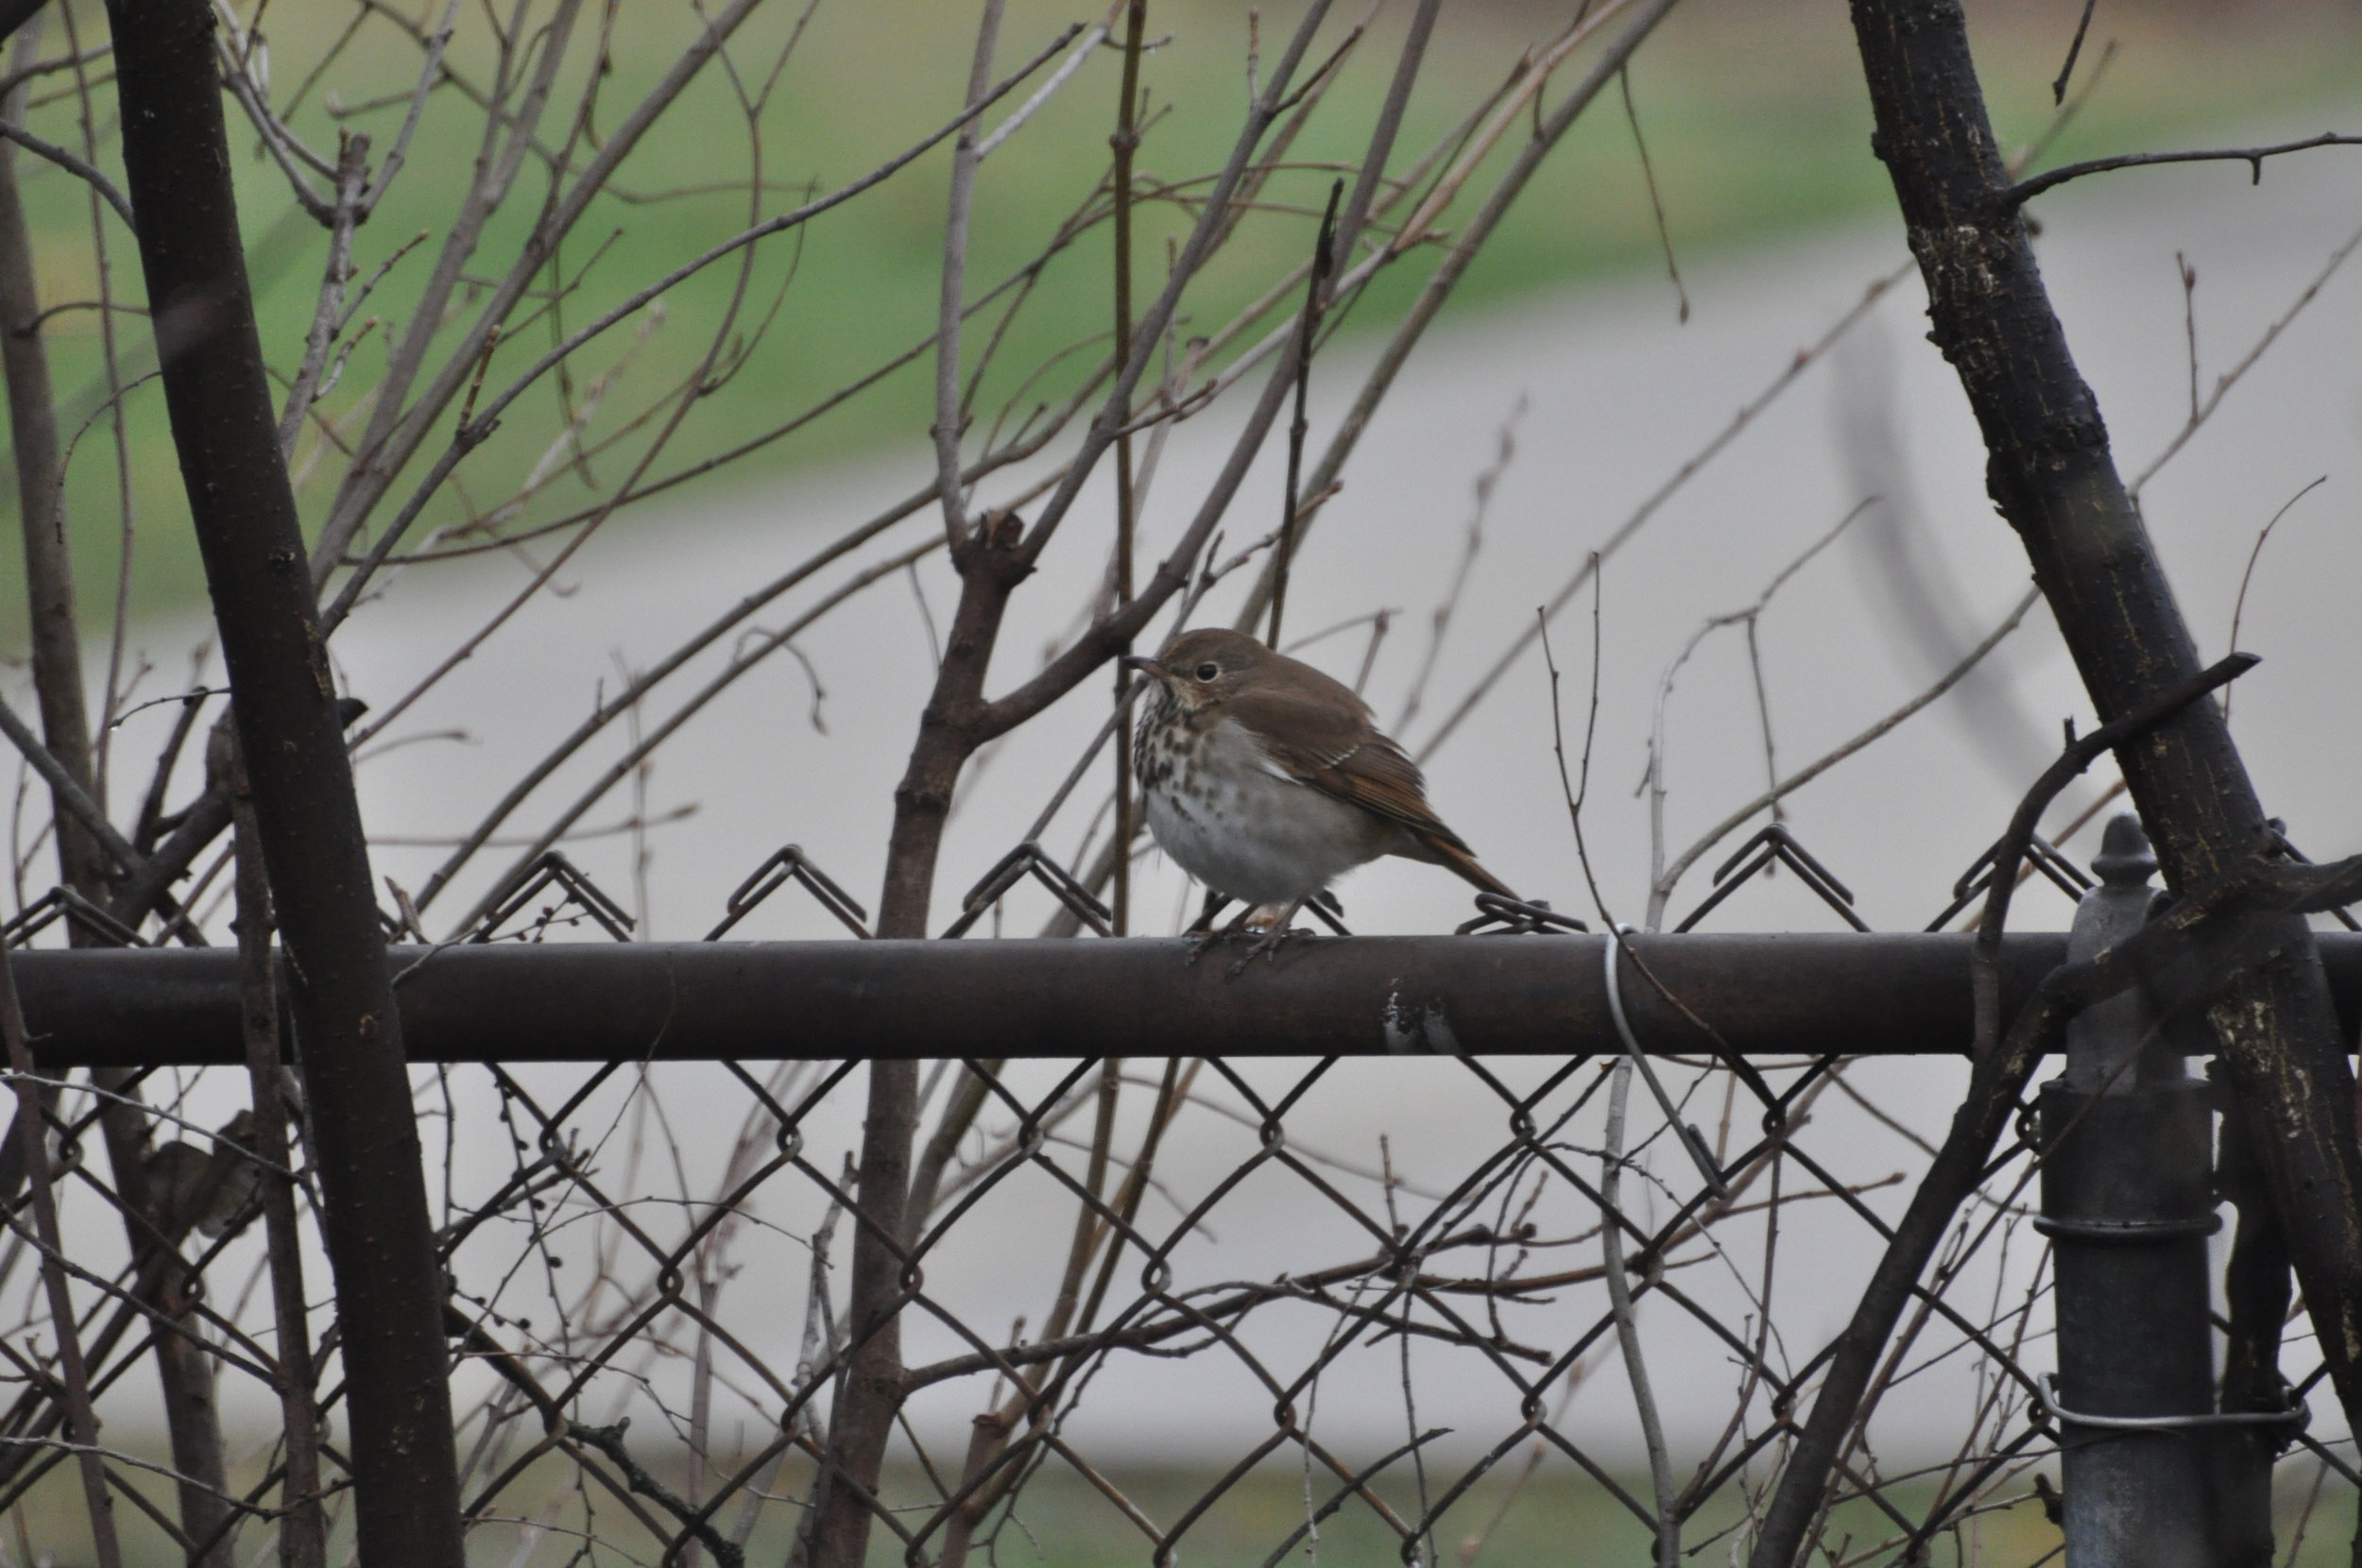 Saw this little buddy passing through Michigan in April of 2019. A Hermit Thrush that stayed around in the area for a couple of hours and also hung out with some local robins!